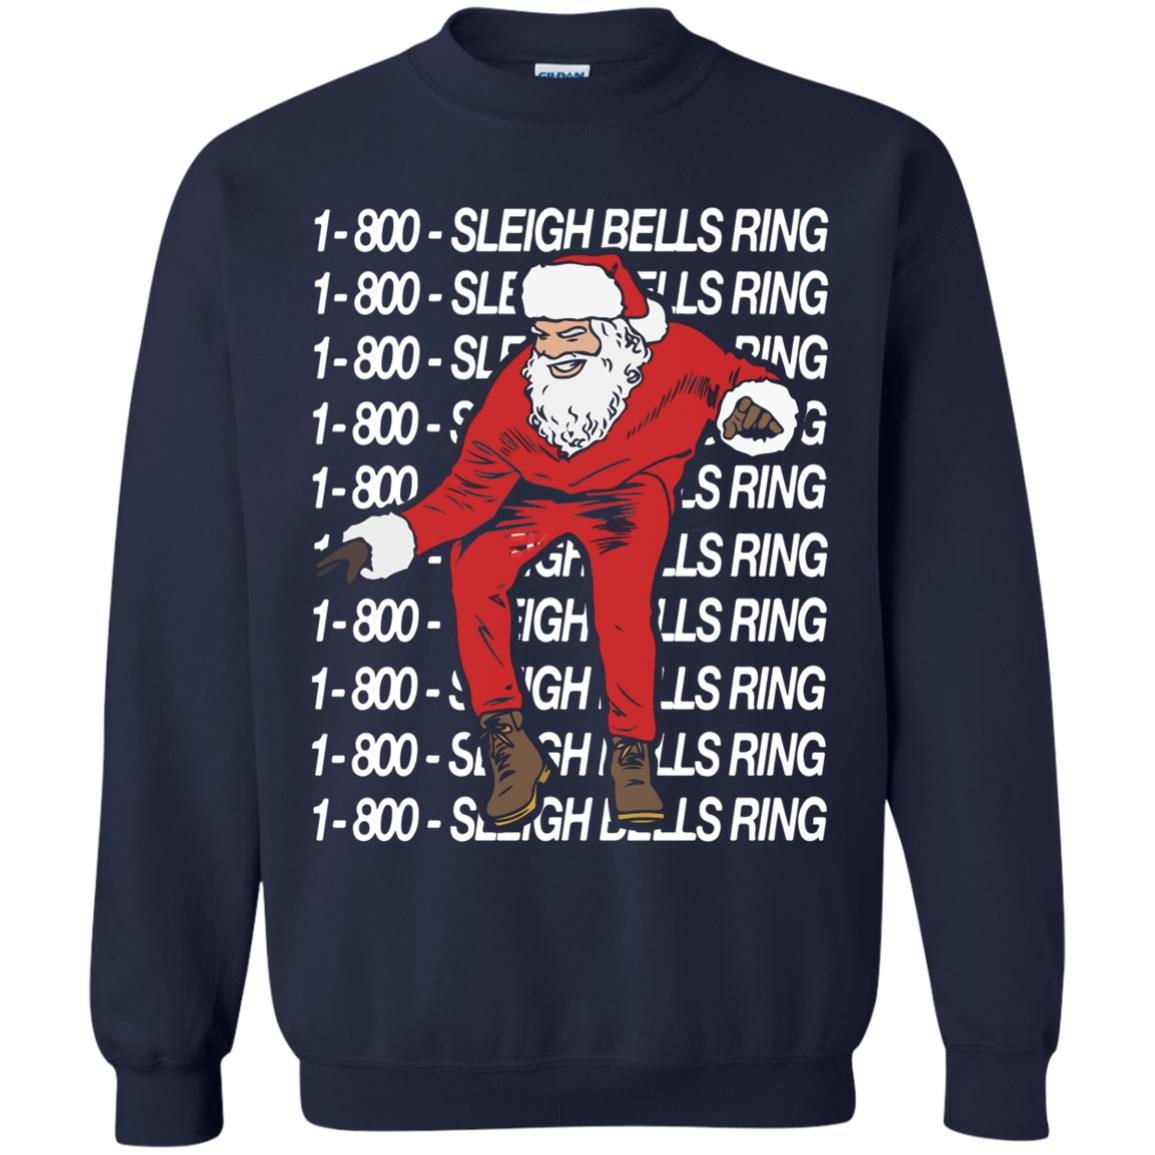 image 6589 - Sleigh Bells Ring 1-800 Christmas Sweater, Long Sleeve